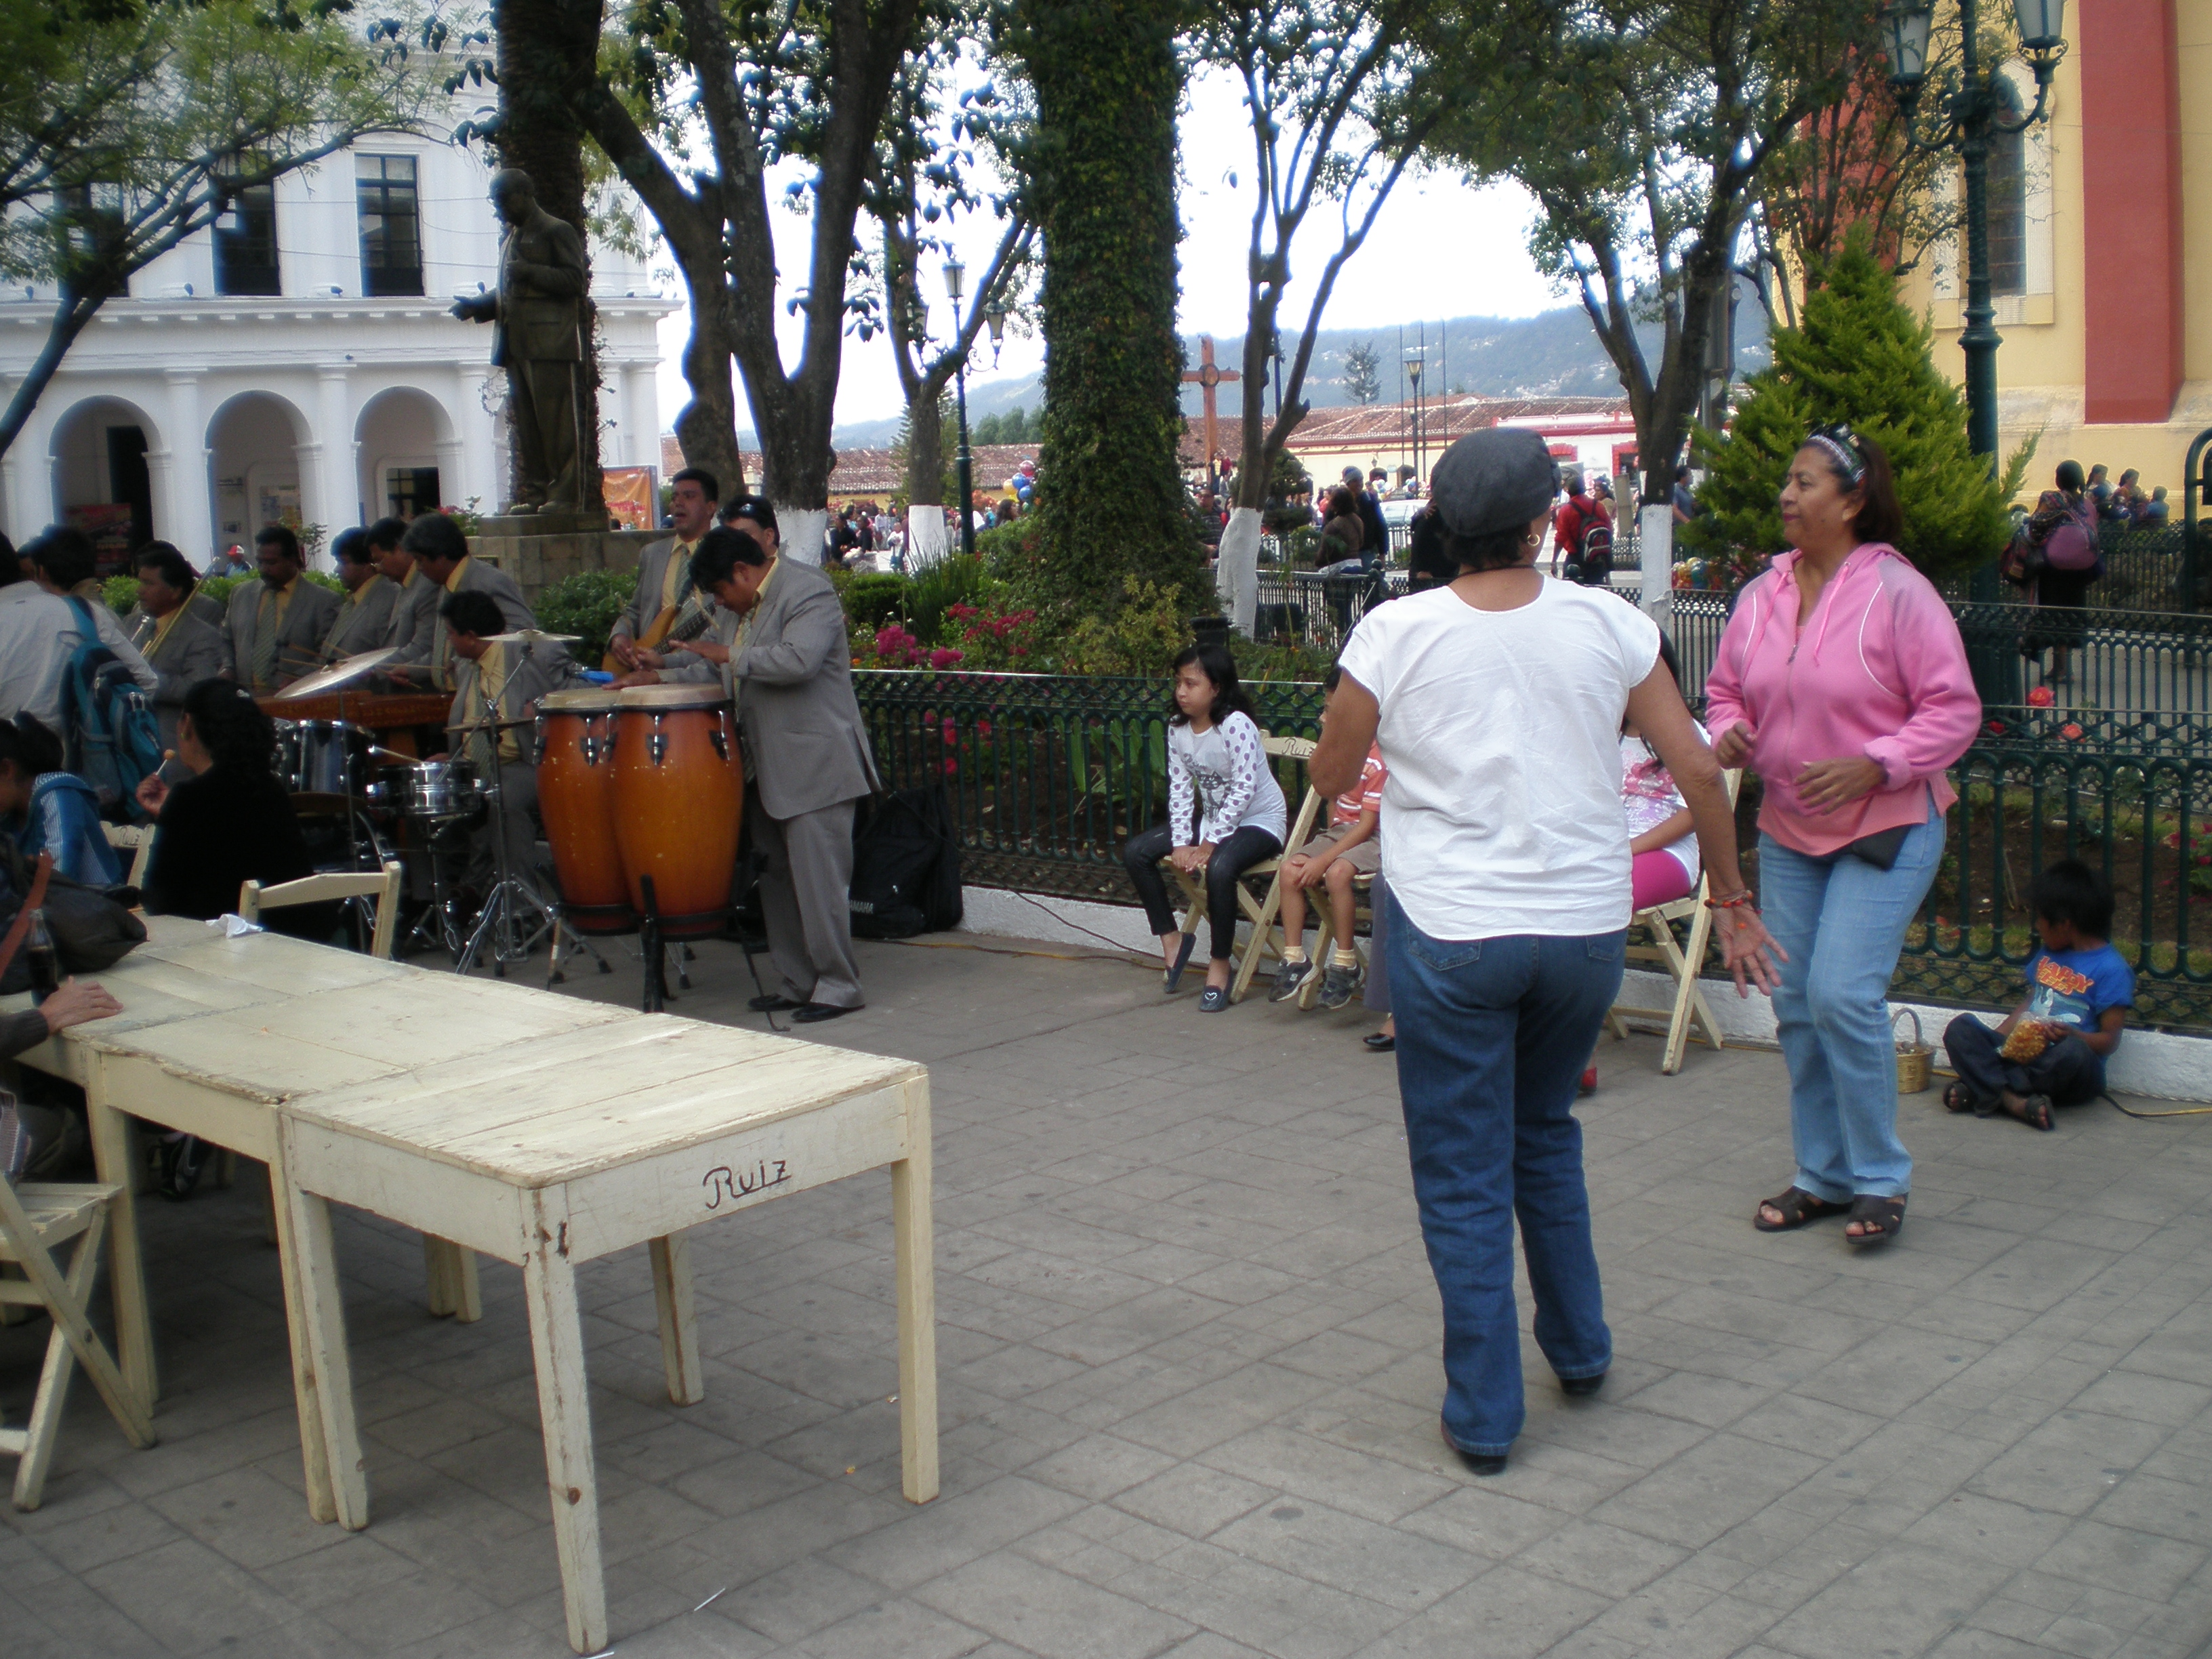 Dancers in San Cristobal de las Casas